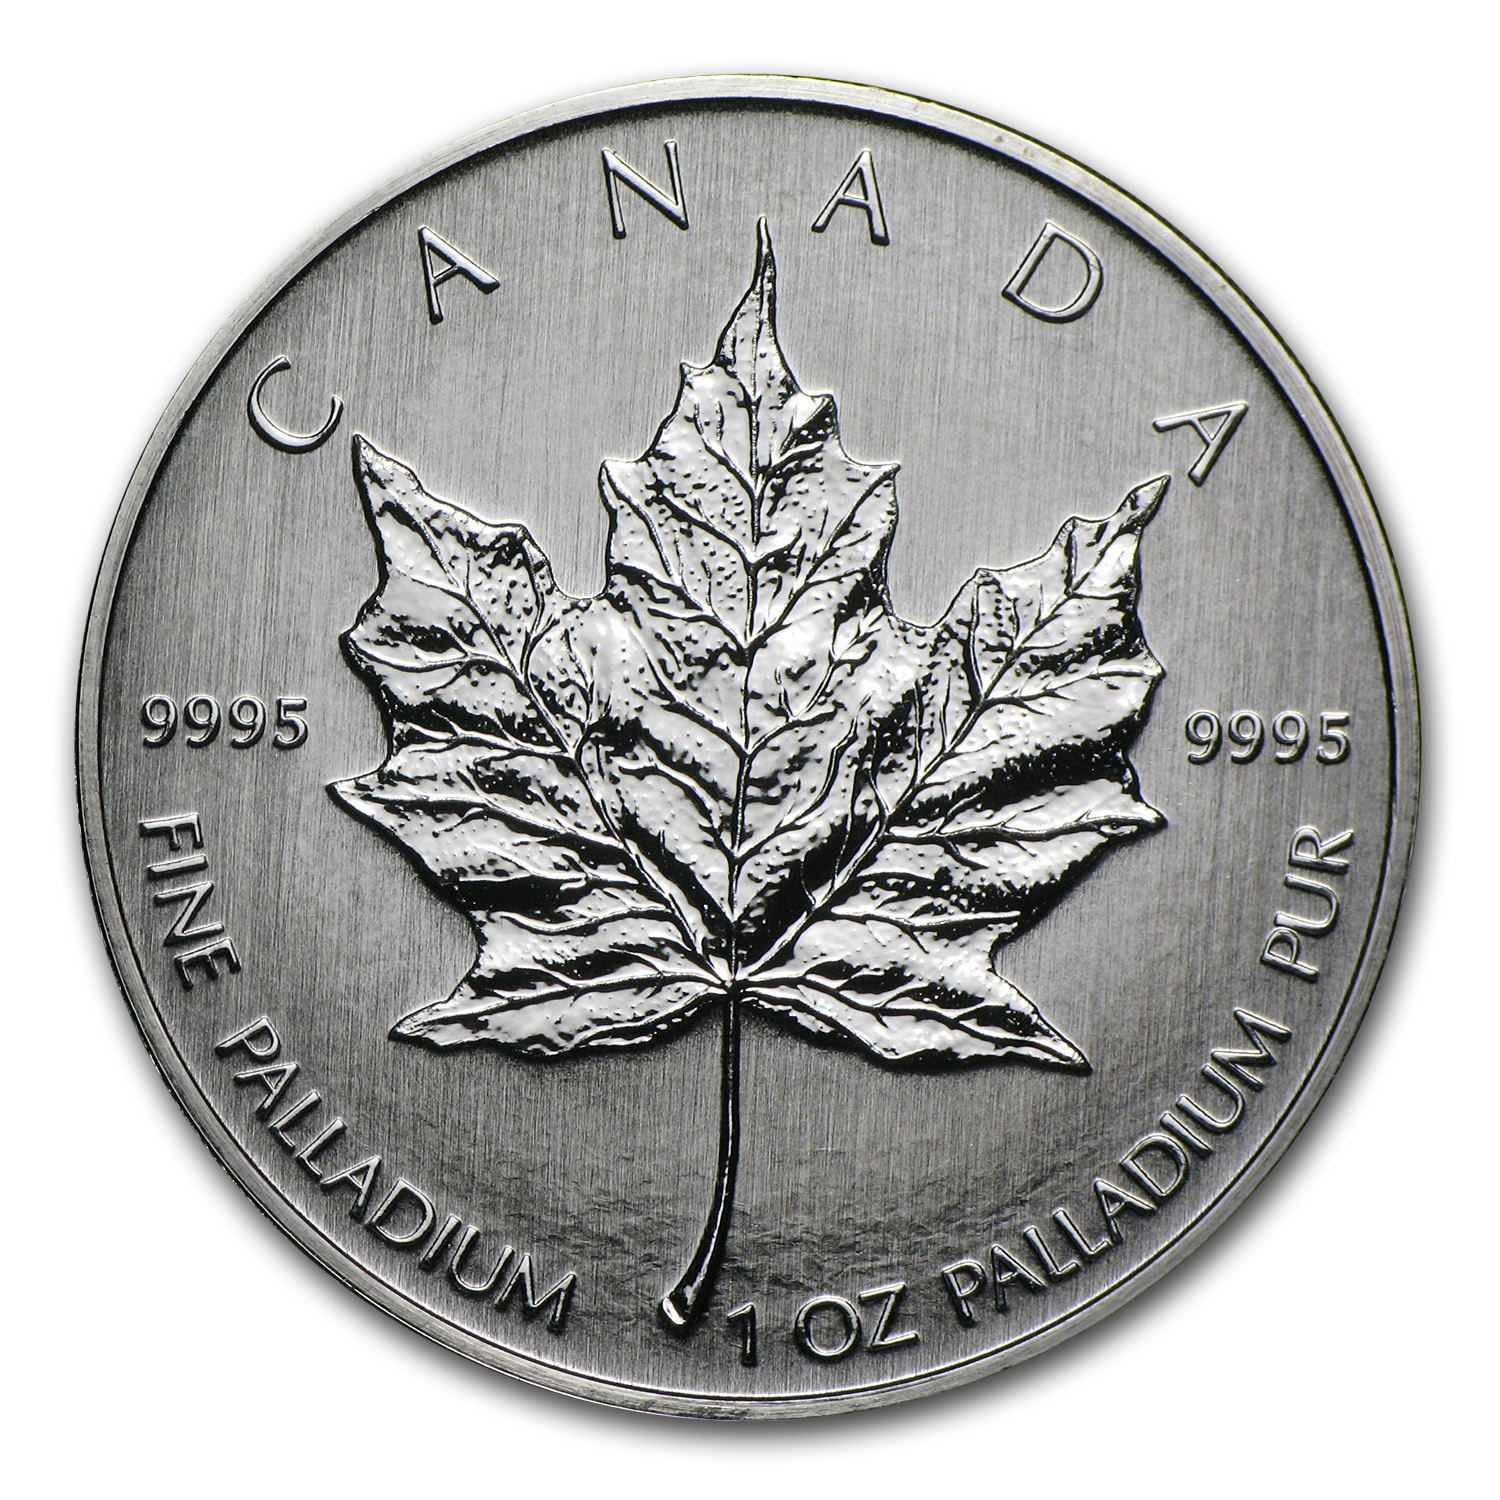 2009 Canada 1 oz Palladium Maple Leaf BU